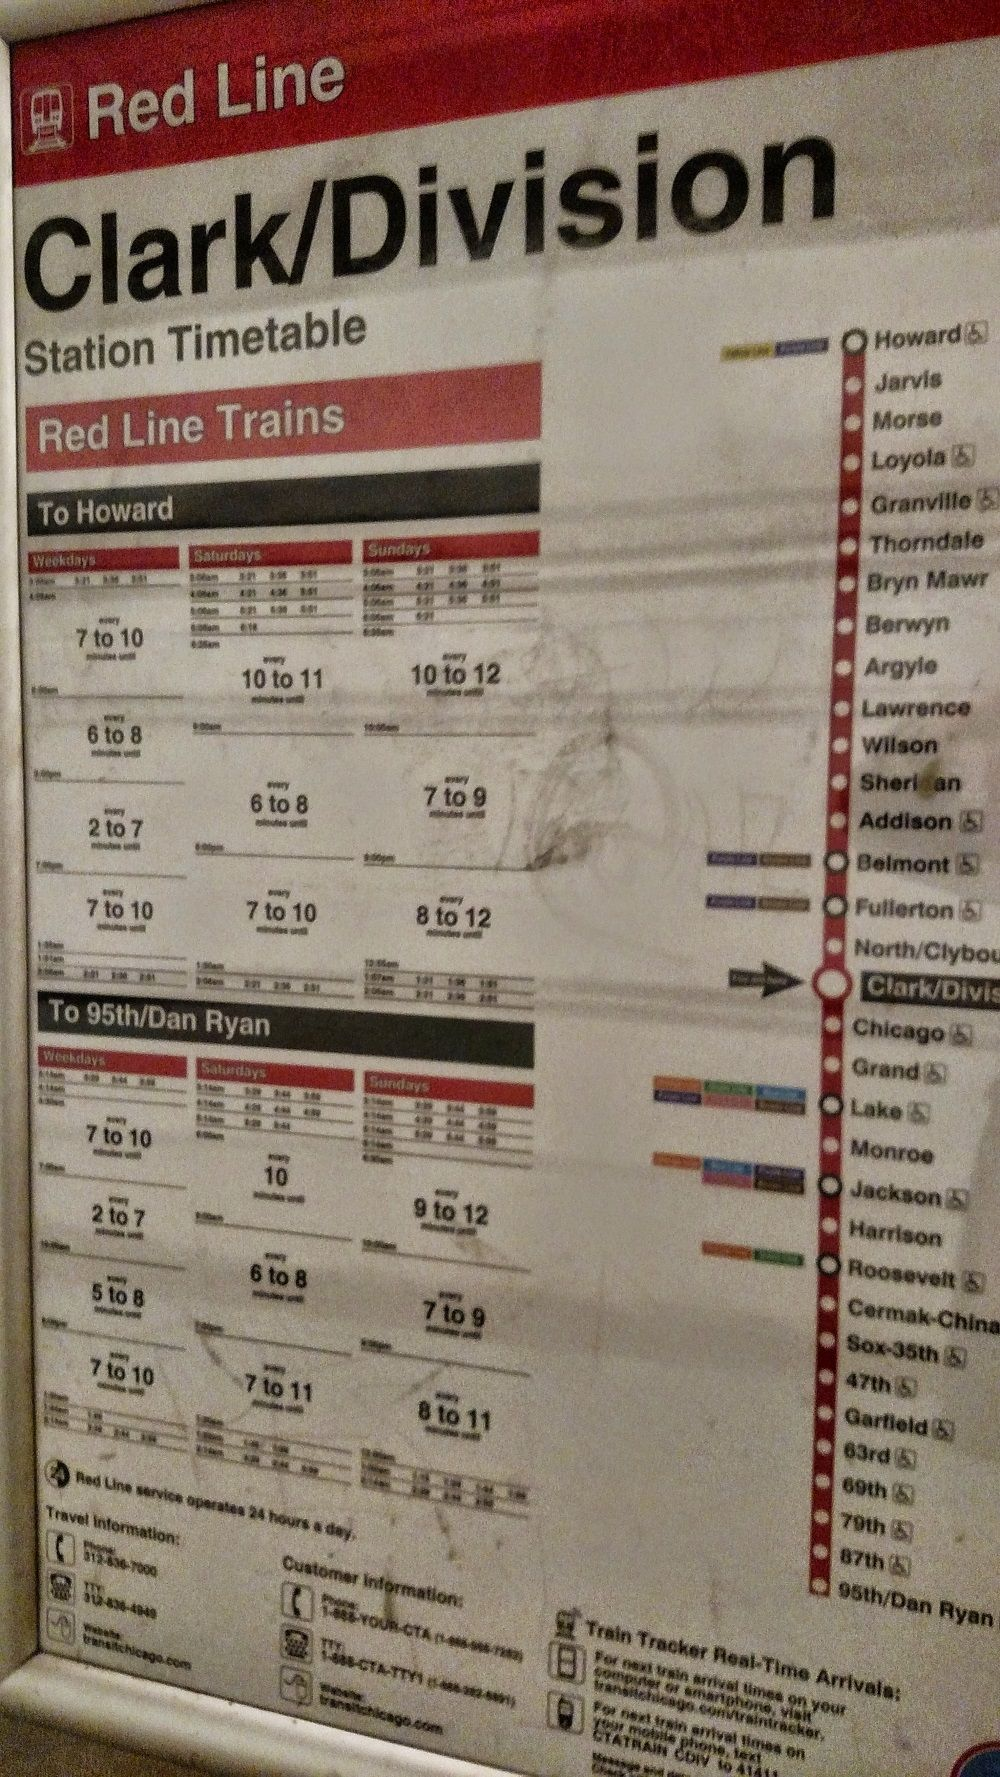 Clark/Division CTA Red Line map near Hash House A Go Go ... on chicago green line map, blue line, yellow line, chicago transit route map, pink line, jackson/state, chicago rail yards map, chicago red-light district map, chicago l line map, chicago rapid transit map, brown line map, chicago the loop map, lake/state, union station, chicago south shore line map, the loop, south shore line, chicago transit authority, chicago commuter rail map, cta lines map, brown line, purple line, chicago transit line map, pink line map, chicago subway station map, chicago l stations map, chicago el map, orange line, green line, metro line map, chicago train map, united states line map, clark/lake,